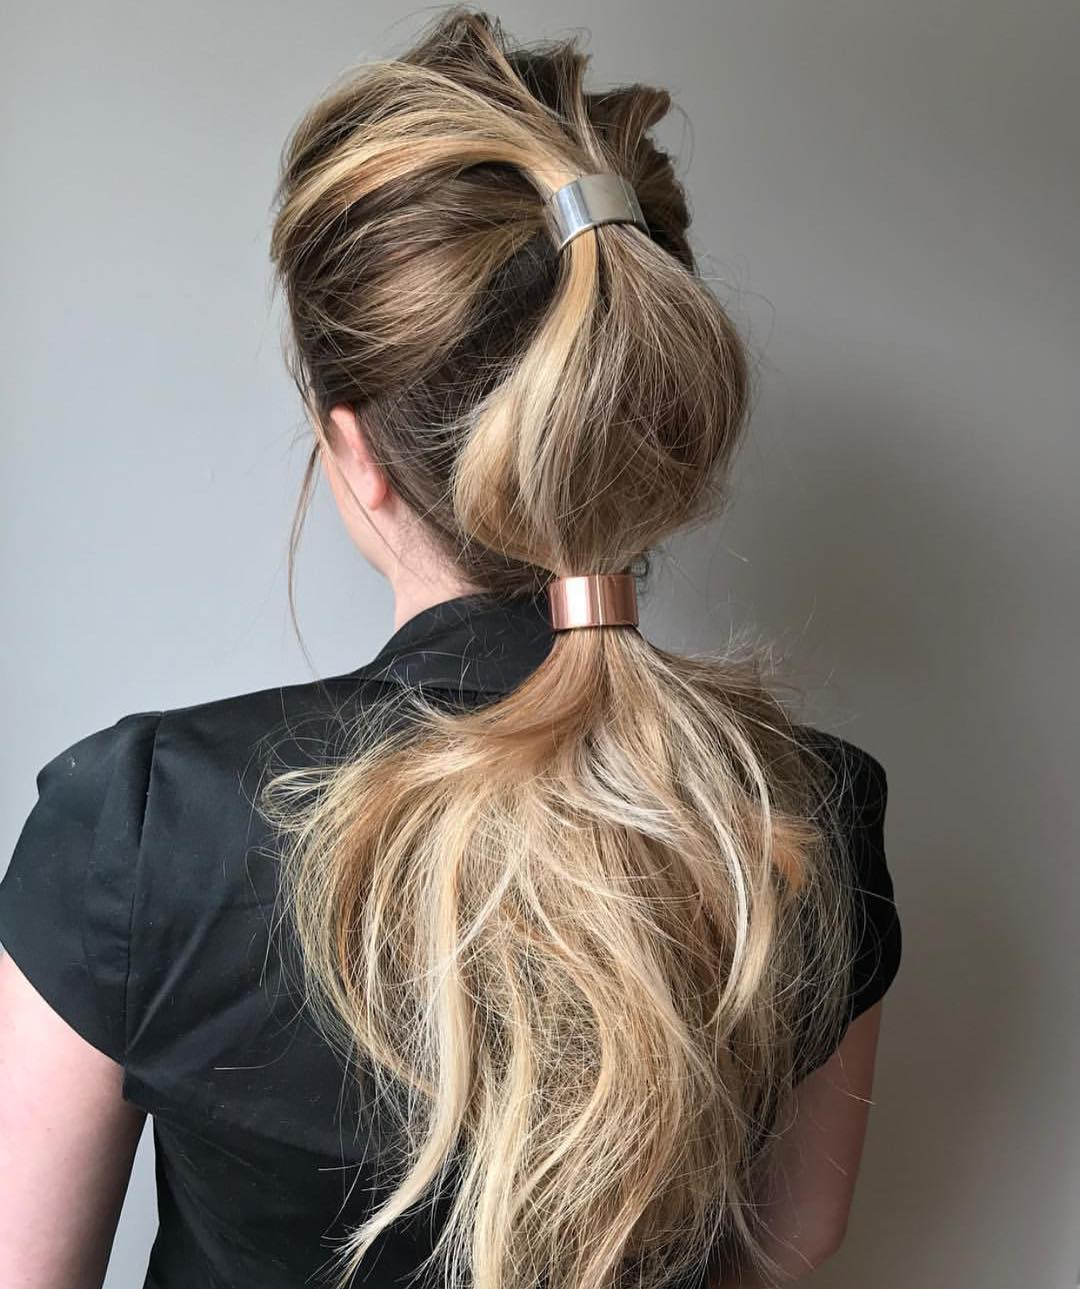 Double-Clutch-Ponytail- 25 Prom Hairstyles 2020 for an Exquisite Look